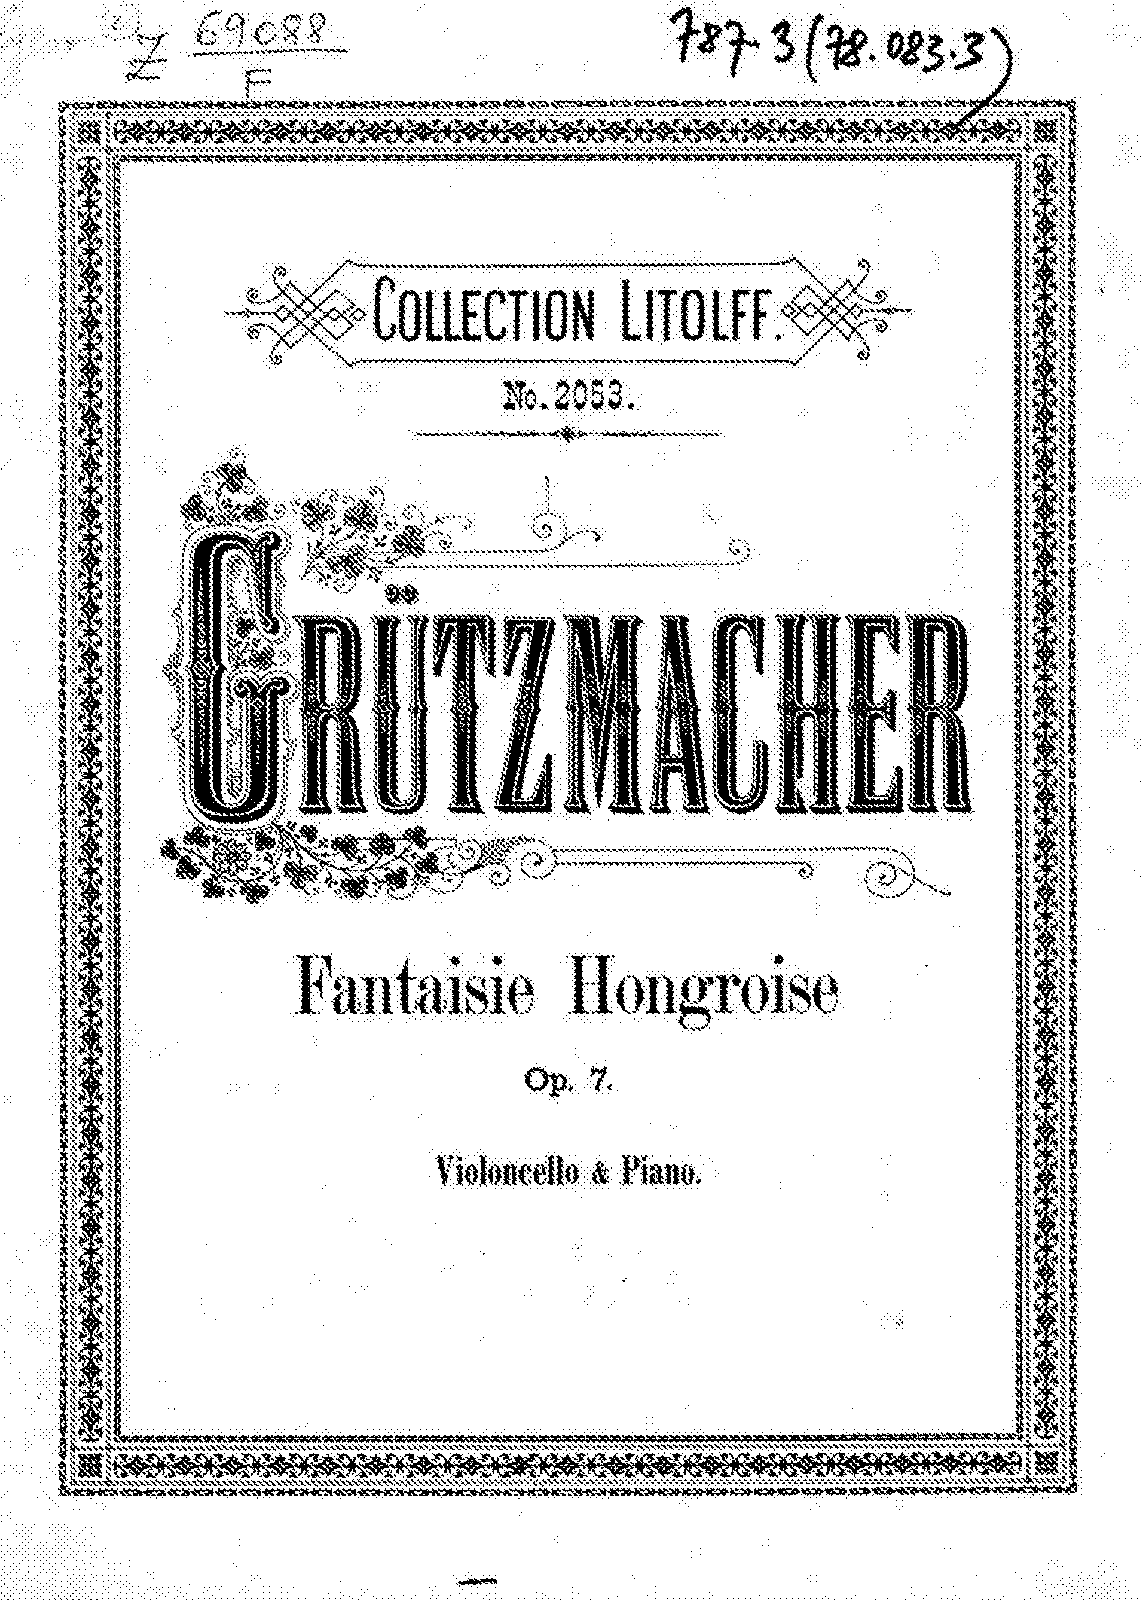 PMLP72387-Op. 7 Fantaisie Hongroise for cello and piano.pdf